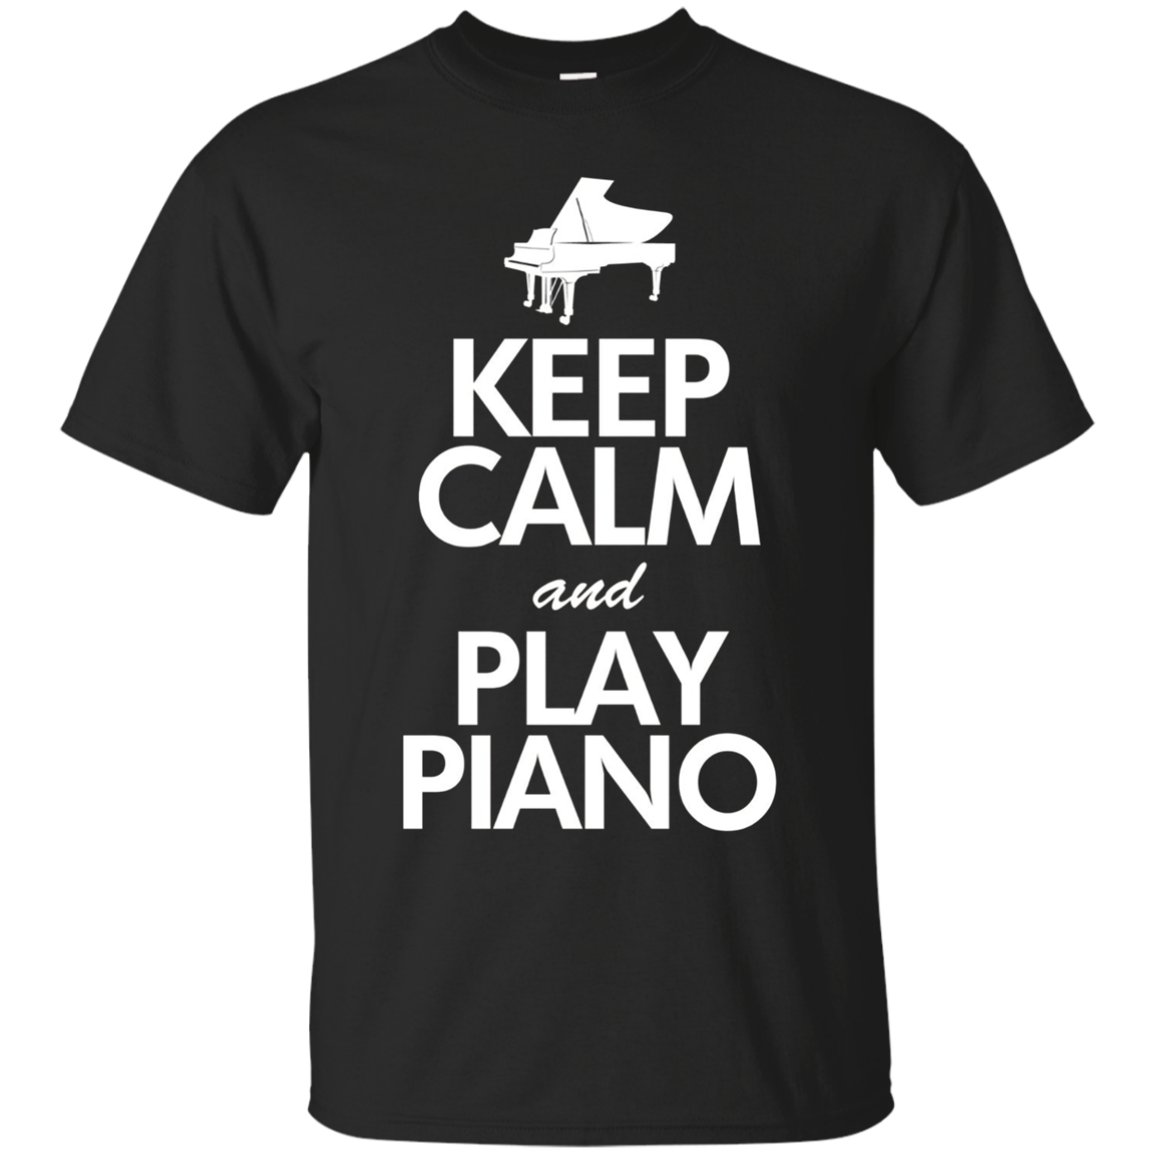 Keep Calm And Play Piano T-Shirt, Funny Players Quote Gift